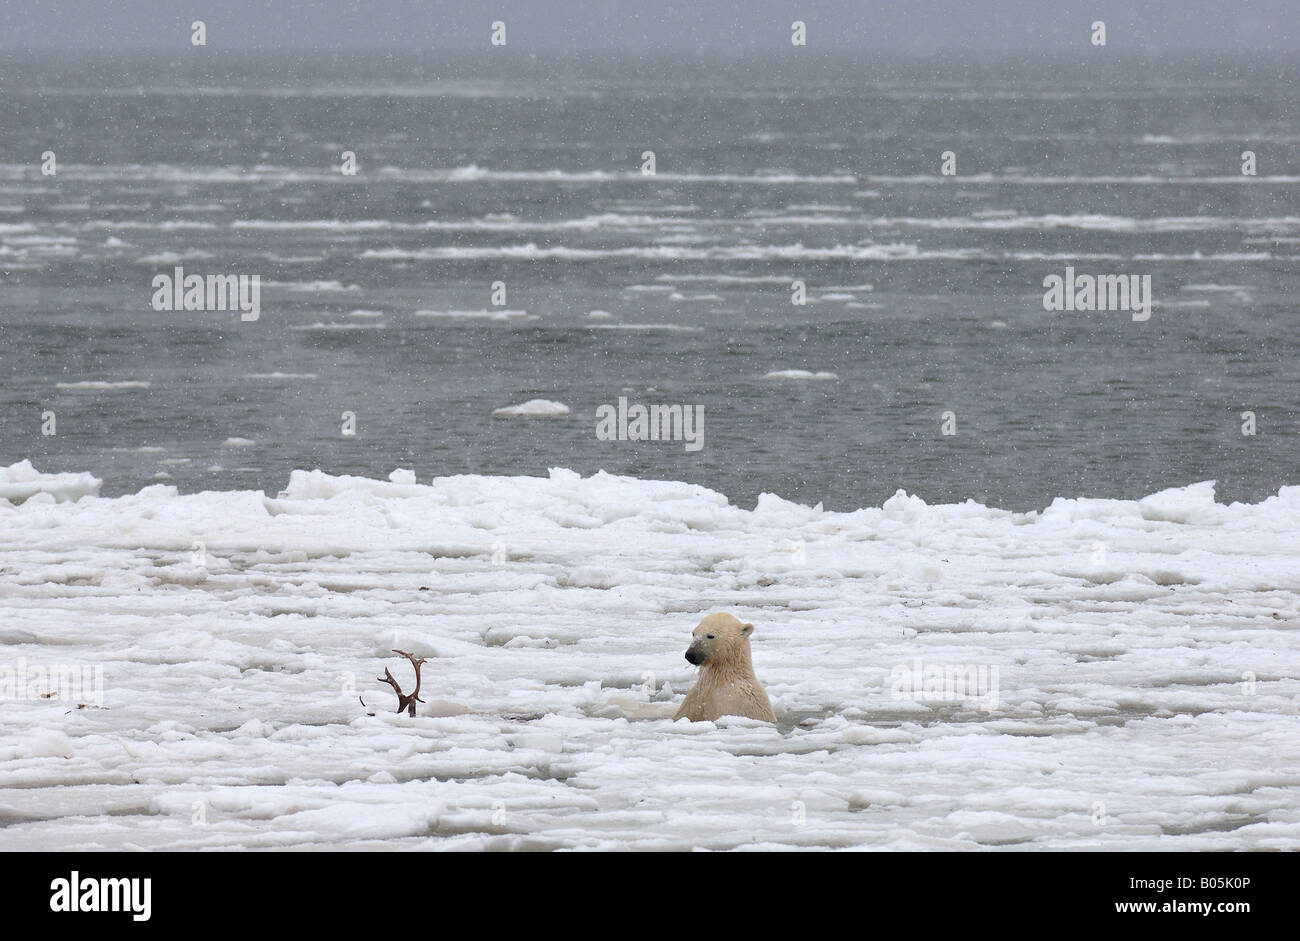 Manitoba Hudson bay unique photos of male polar bear feeding on a caribou carcass Stock Photo